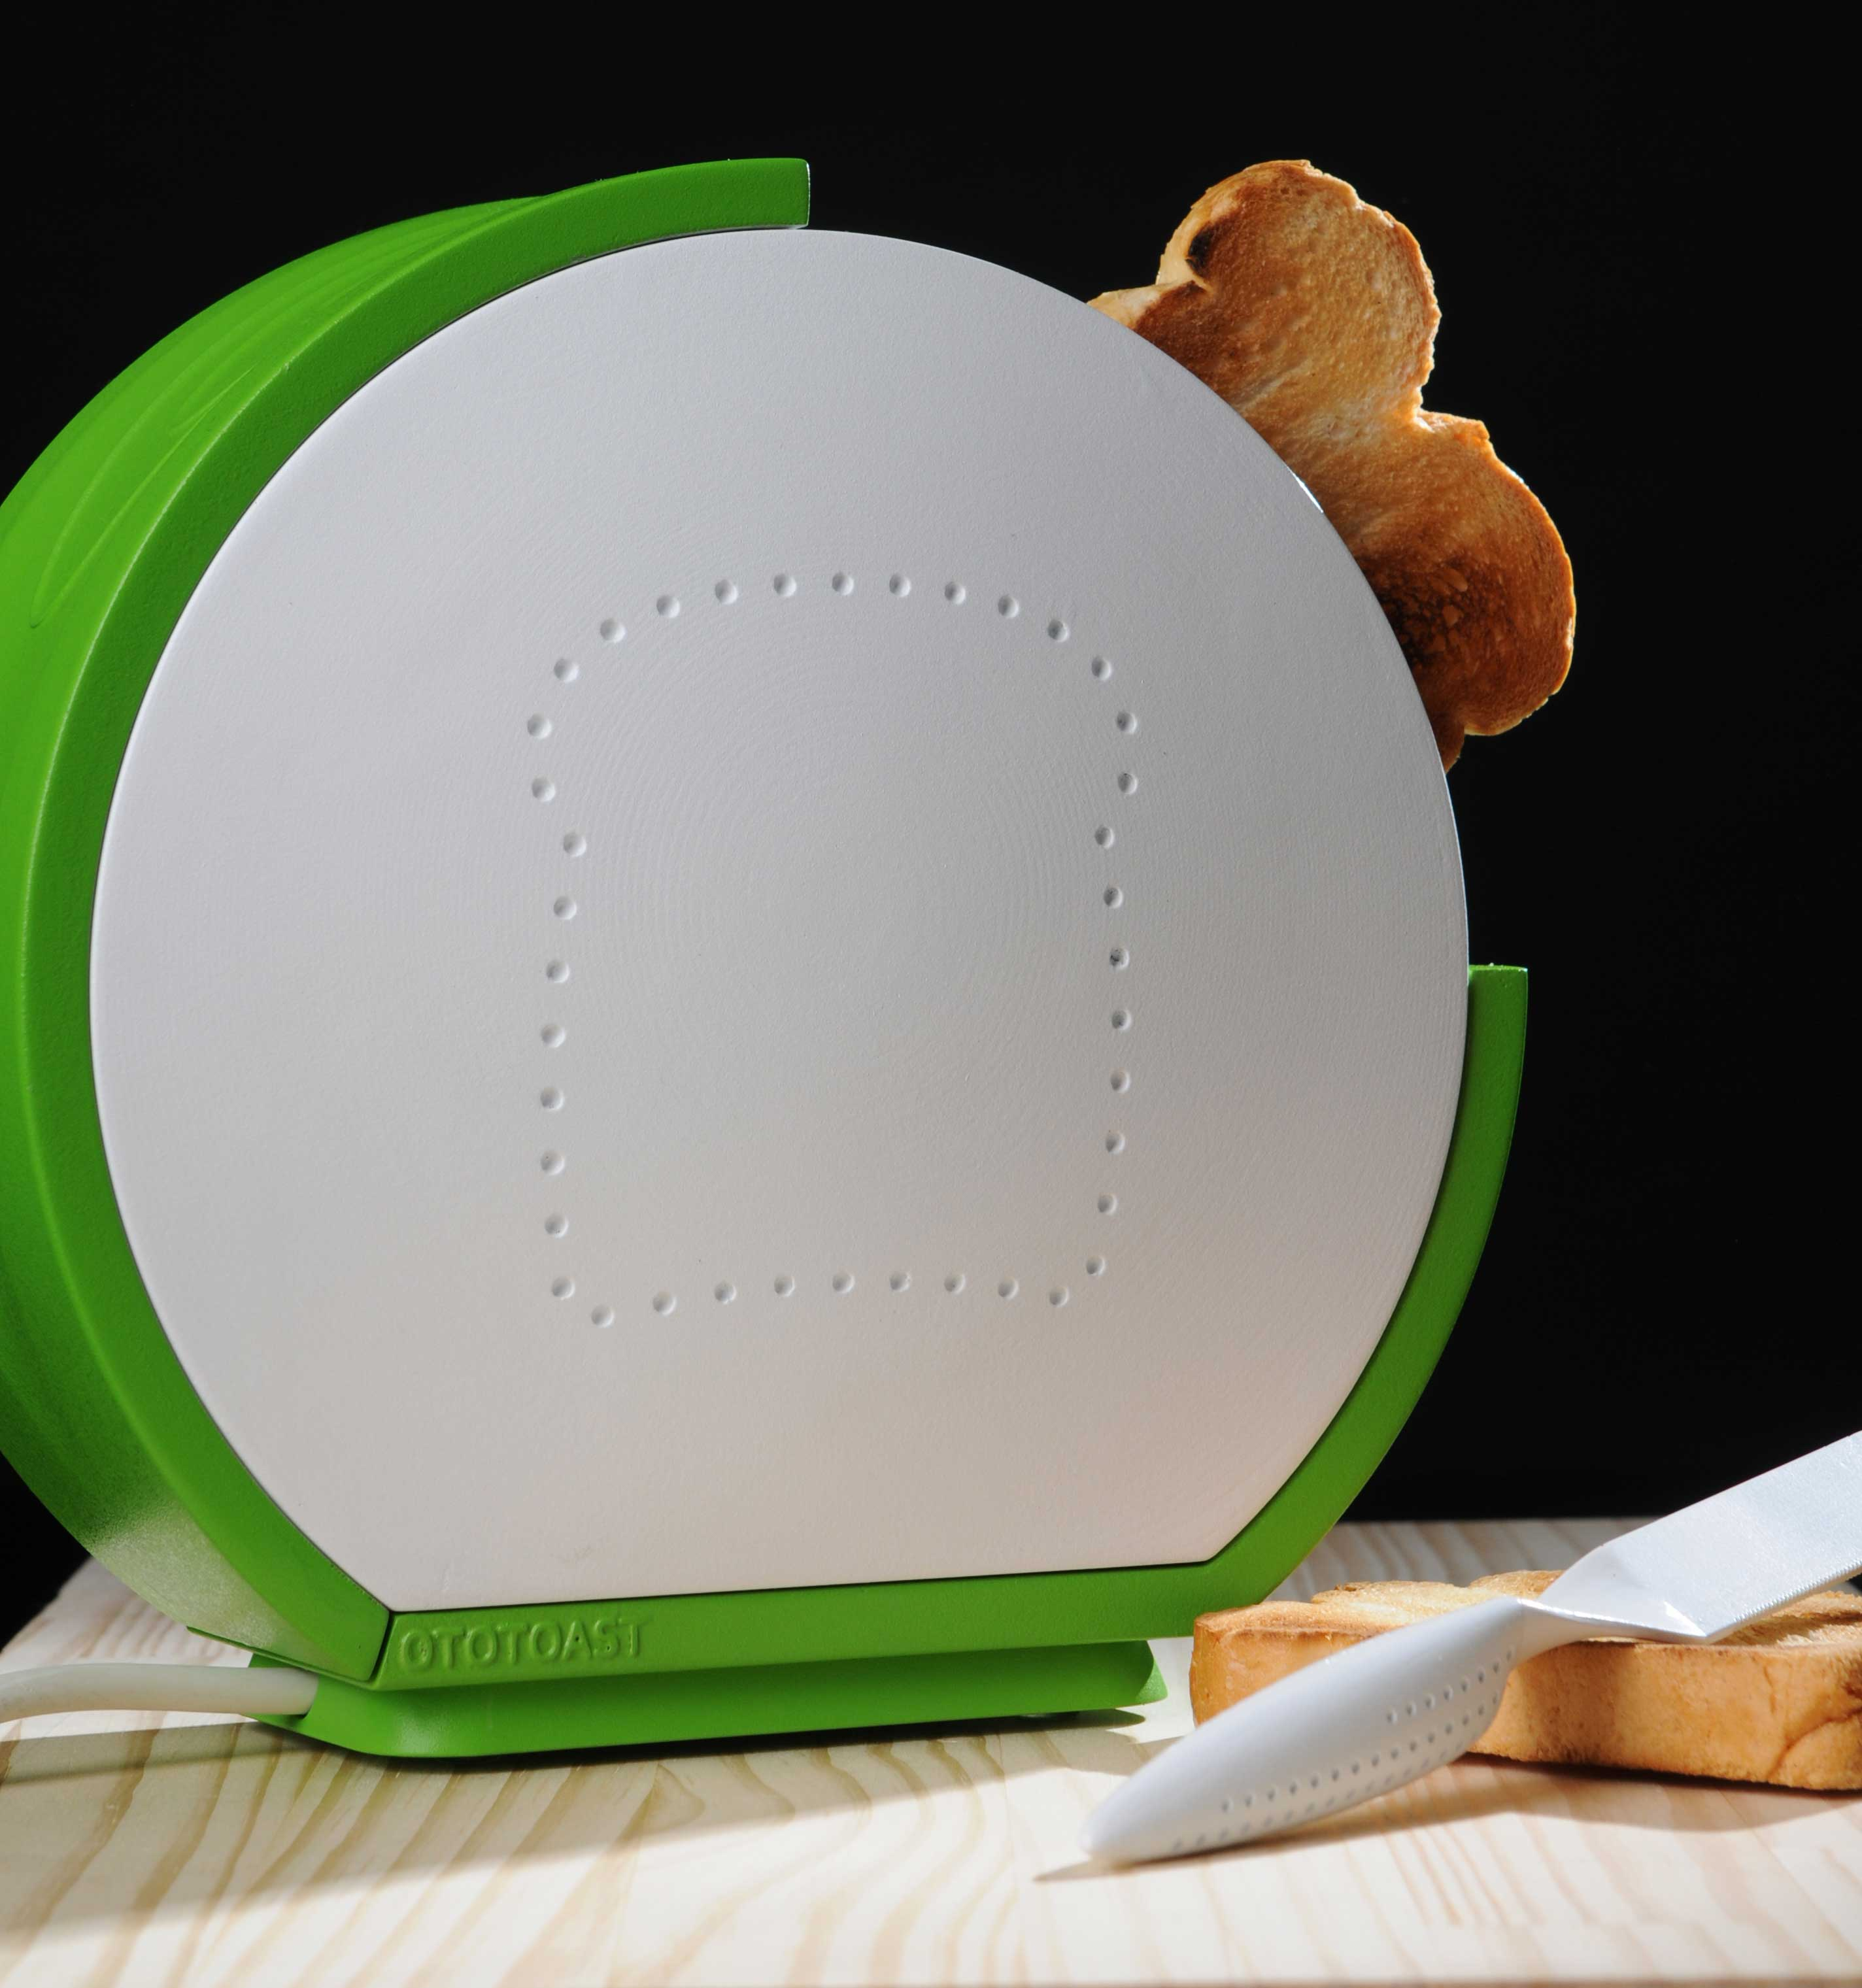 awesome-design-ideas-ototoast-Toaster-Yaksein-Eliran-7